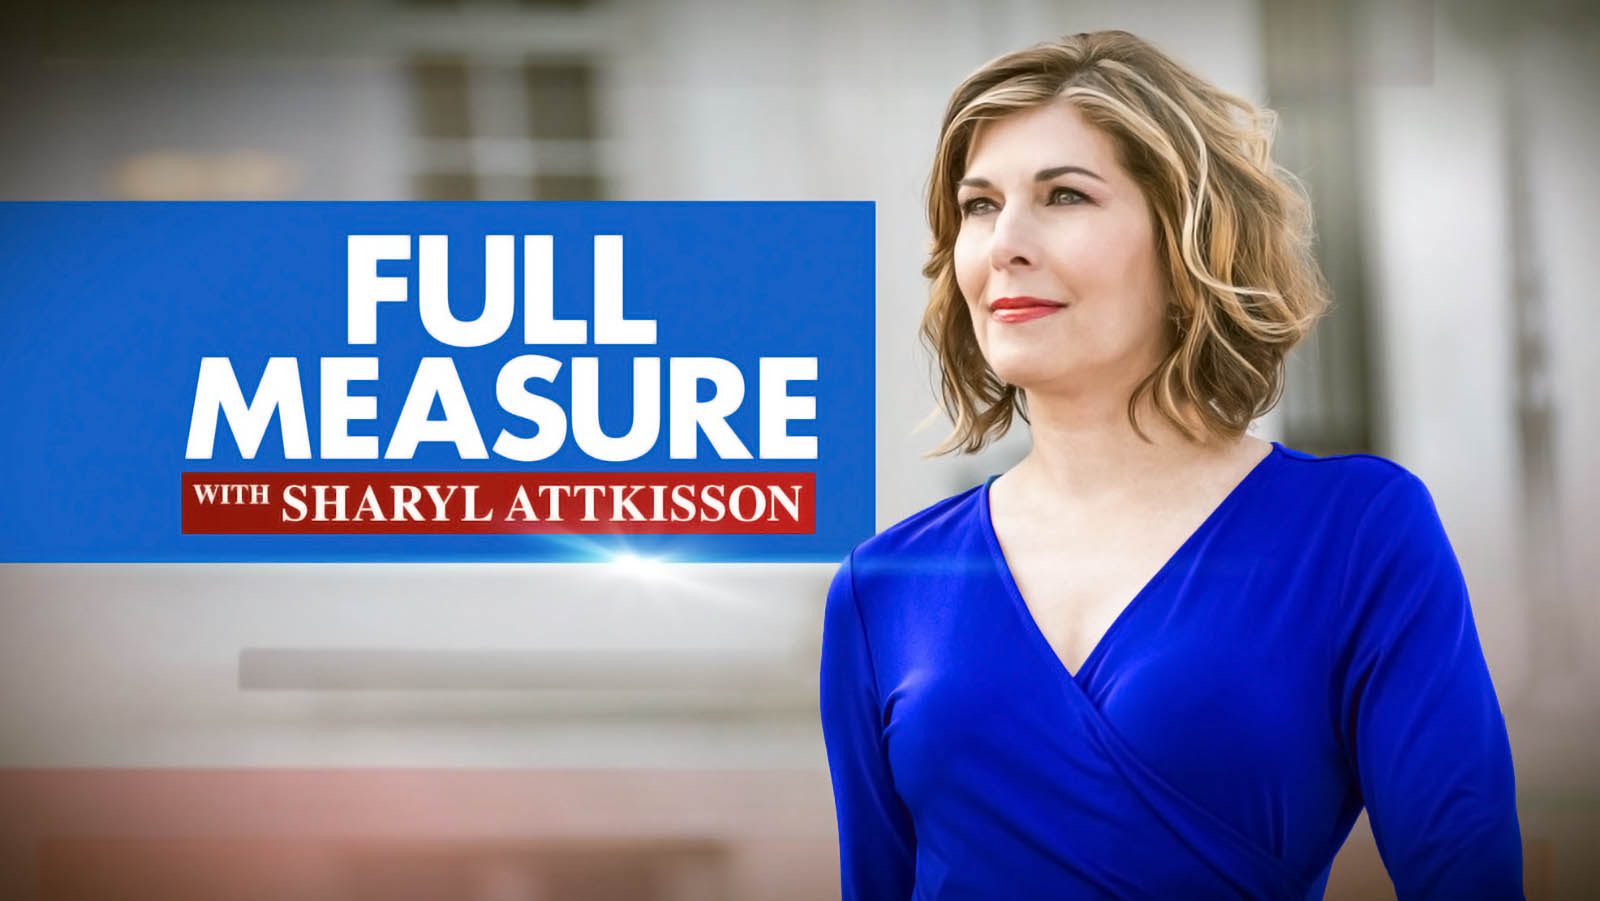 Full Measure with Sharyl Attkisson